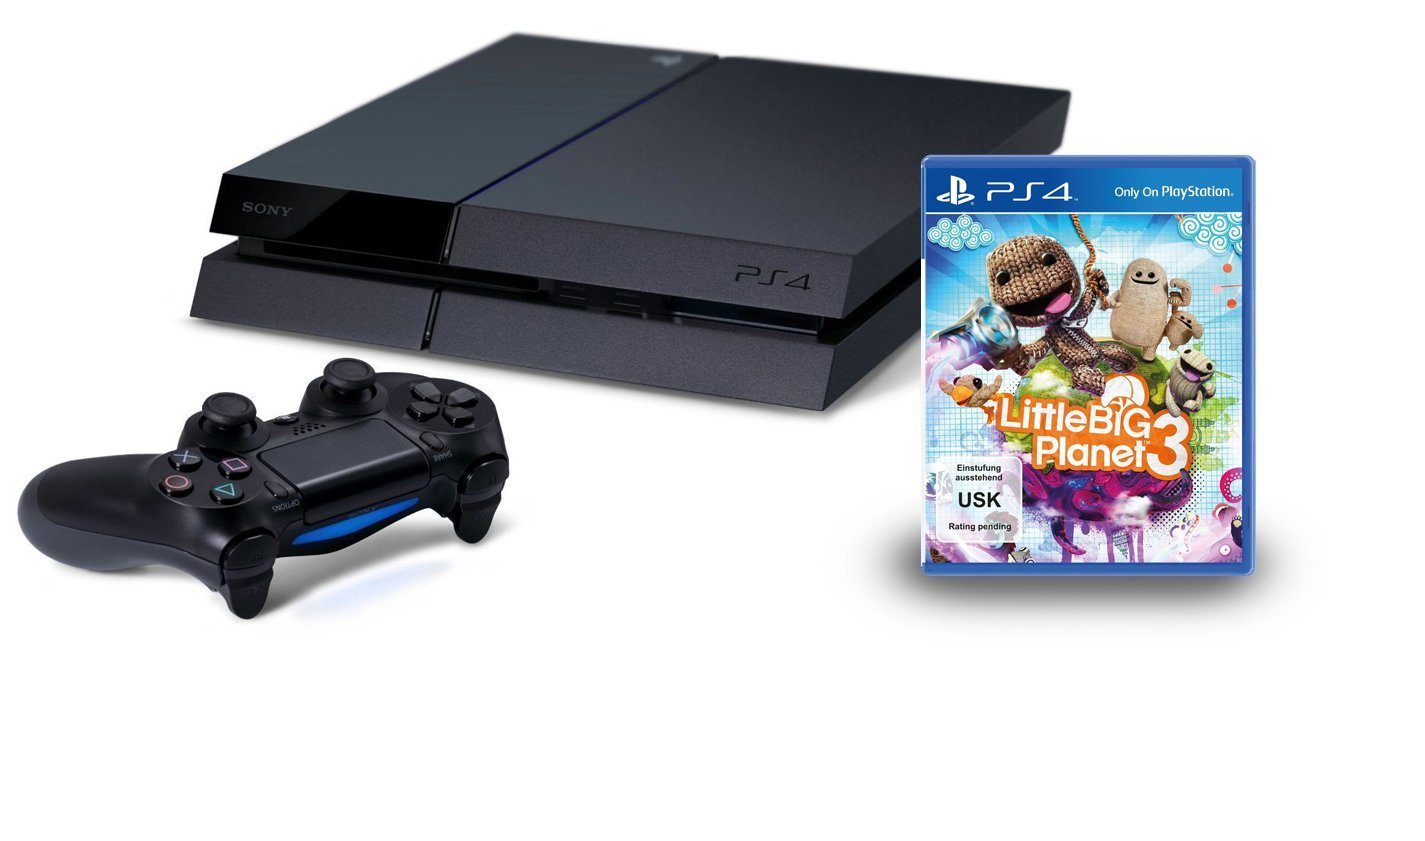 LittleBigPlanet 3 PS4 Bundle kommt